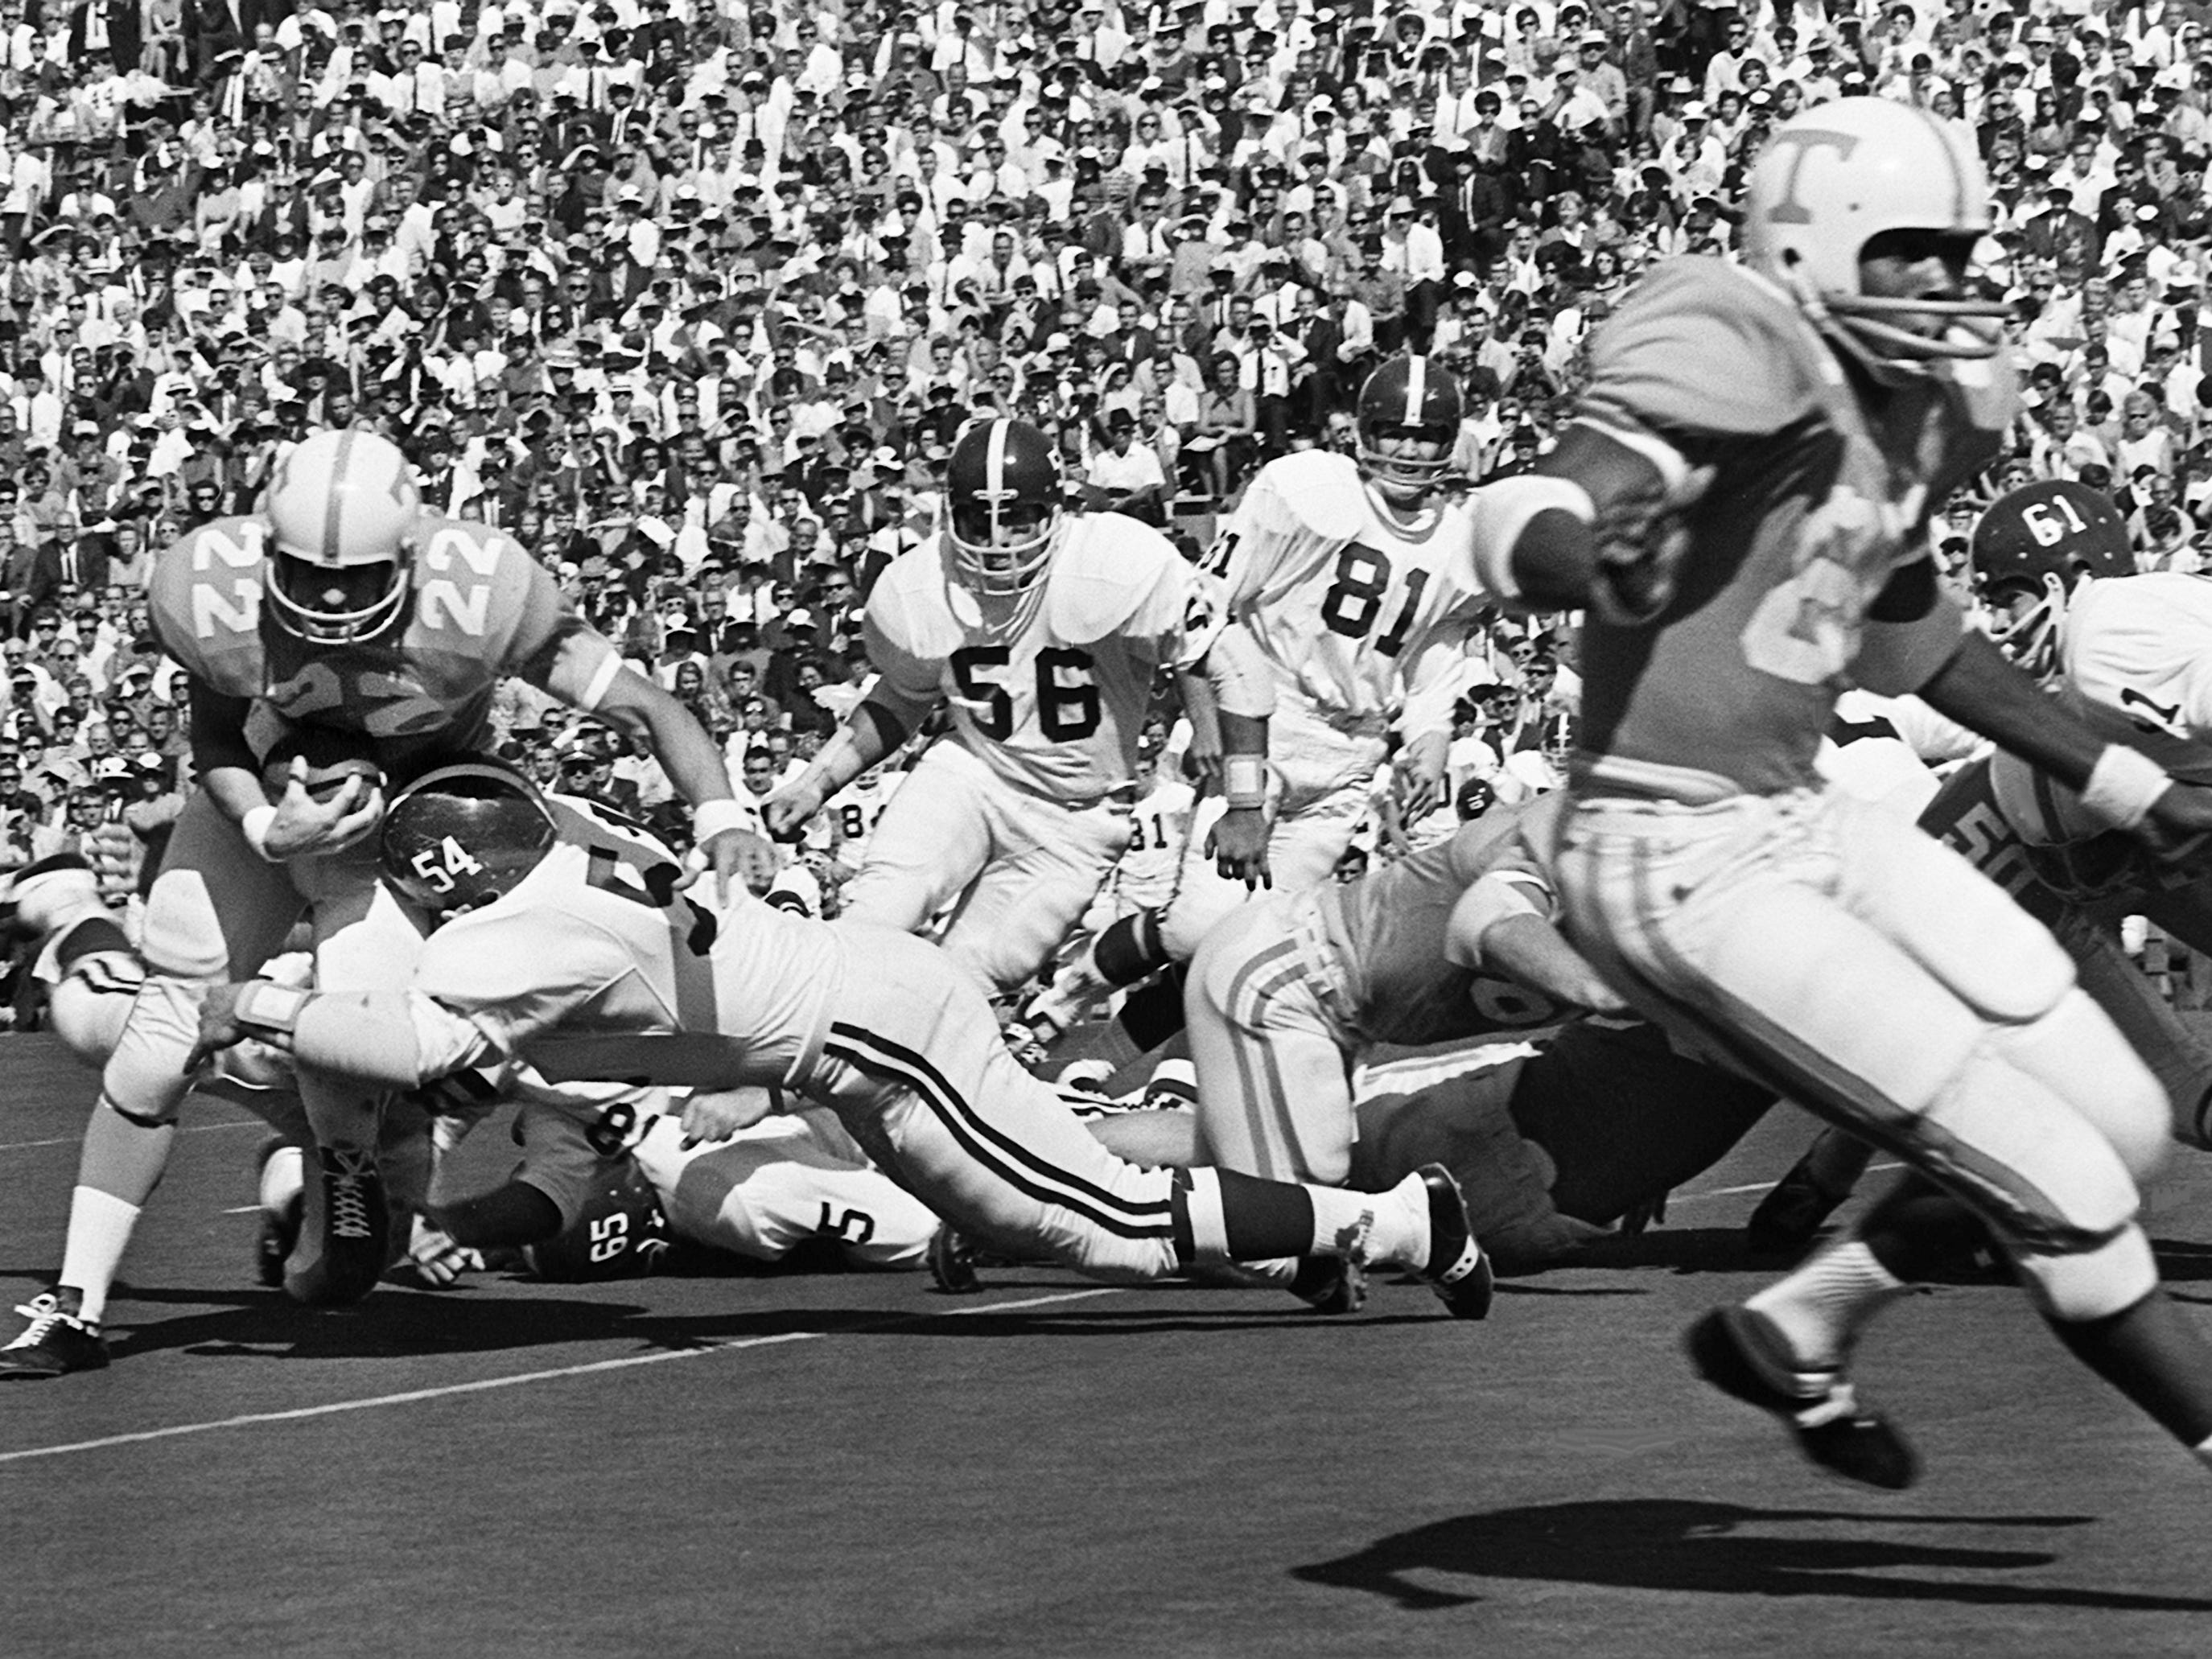 Tennessee senior back Richmond Flowers (22) gets hit by Alabama linebacker Mike Hall (54) before he can get started at Neyland Stadium Oct. 19, 1968.